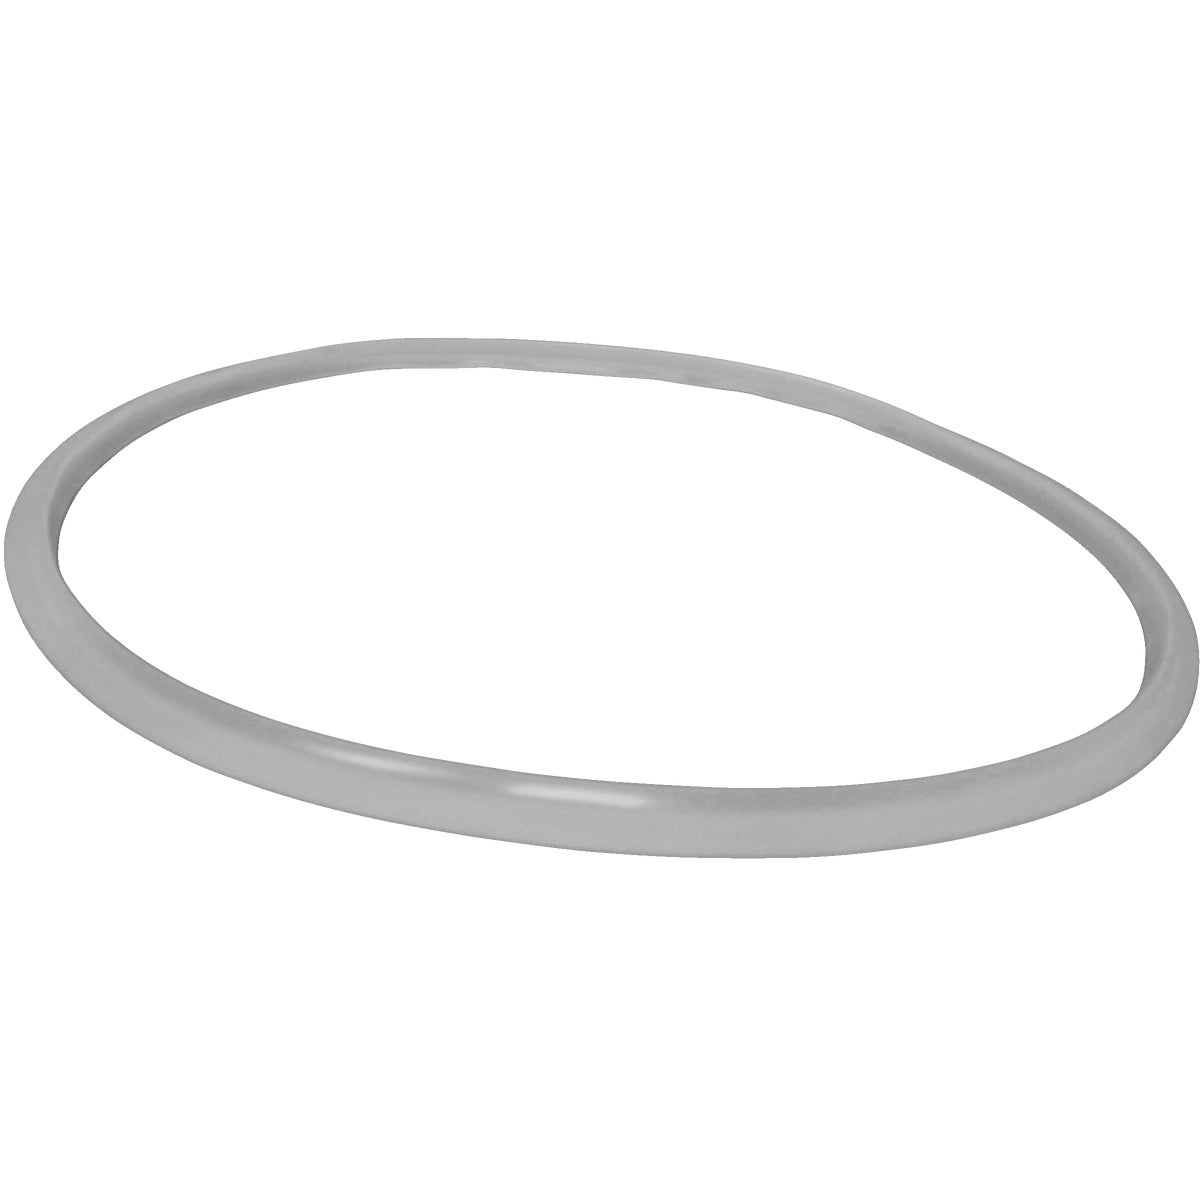 6QT REPLACEMENT GASKET